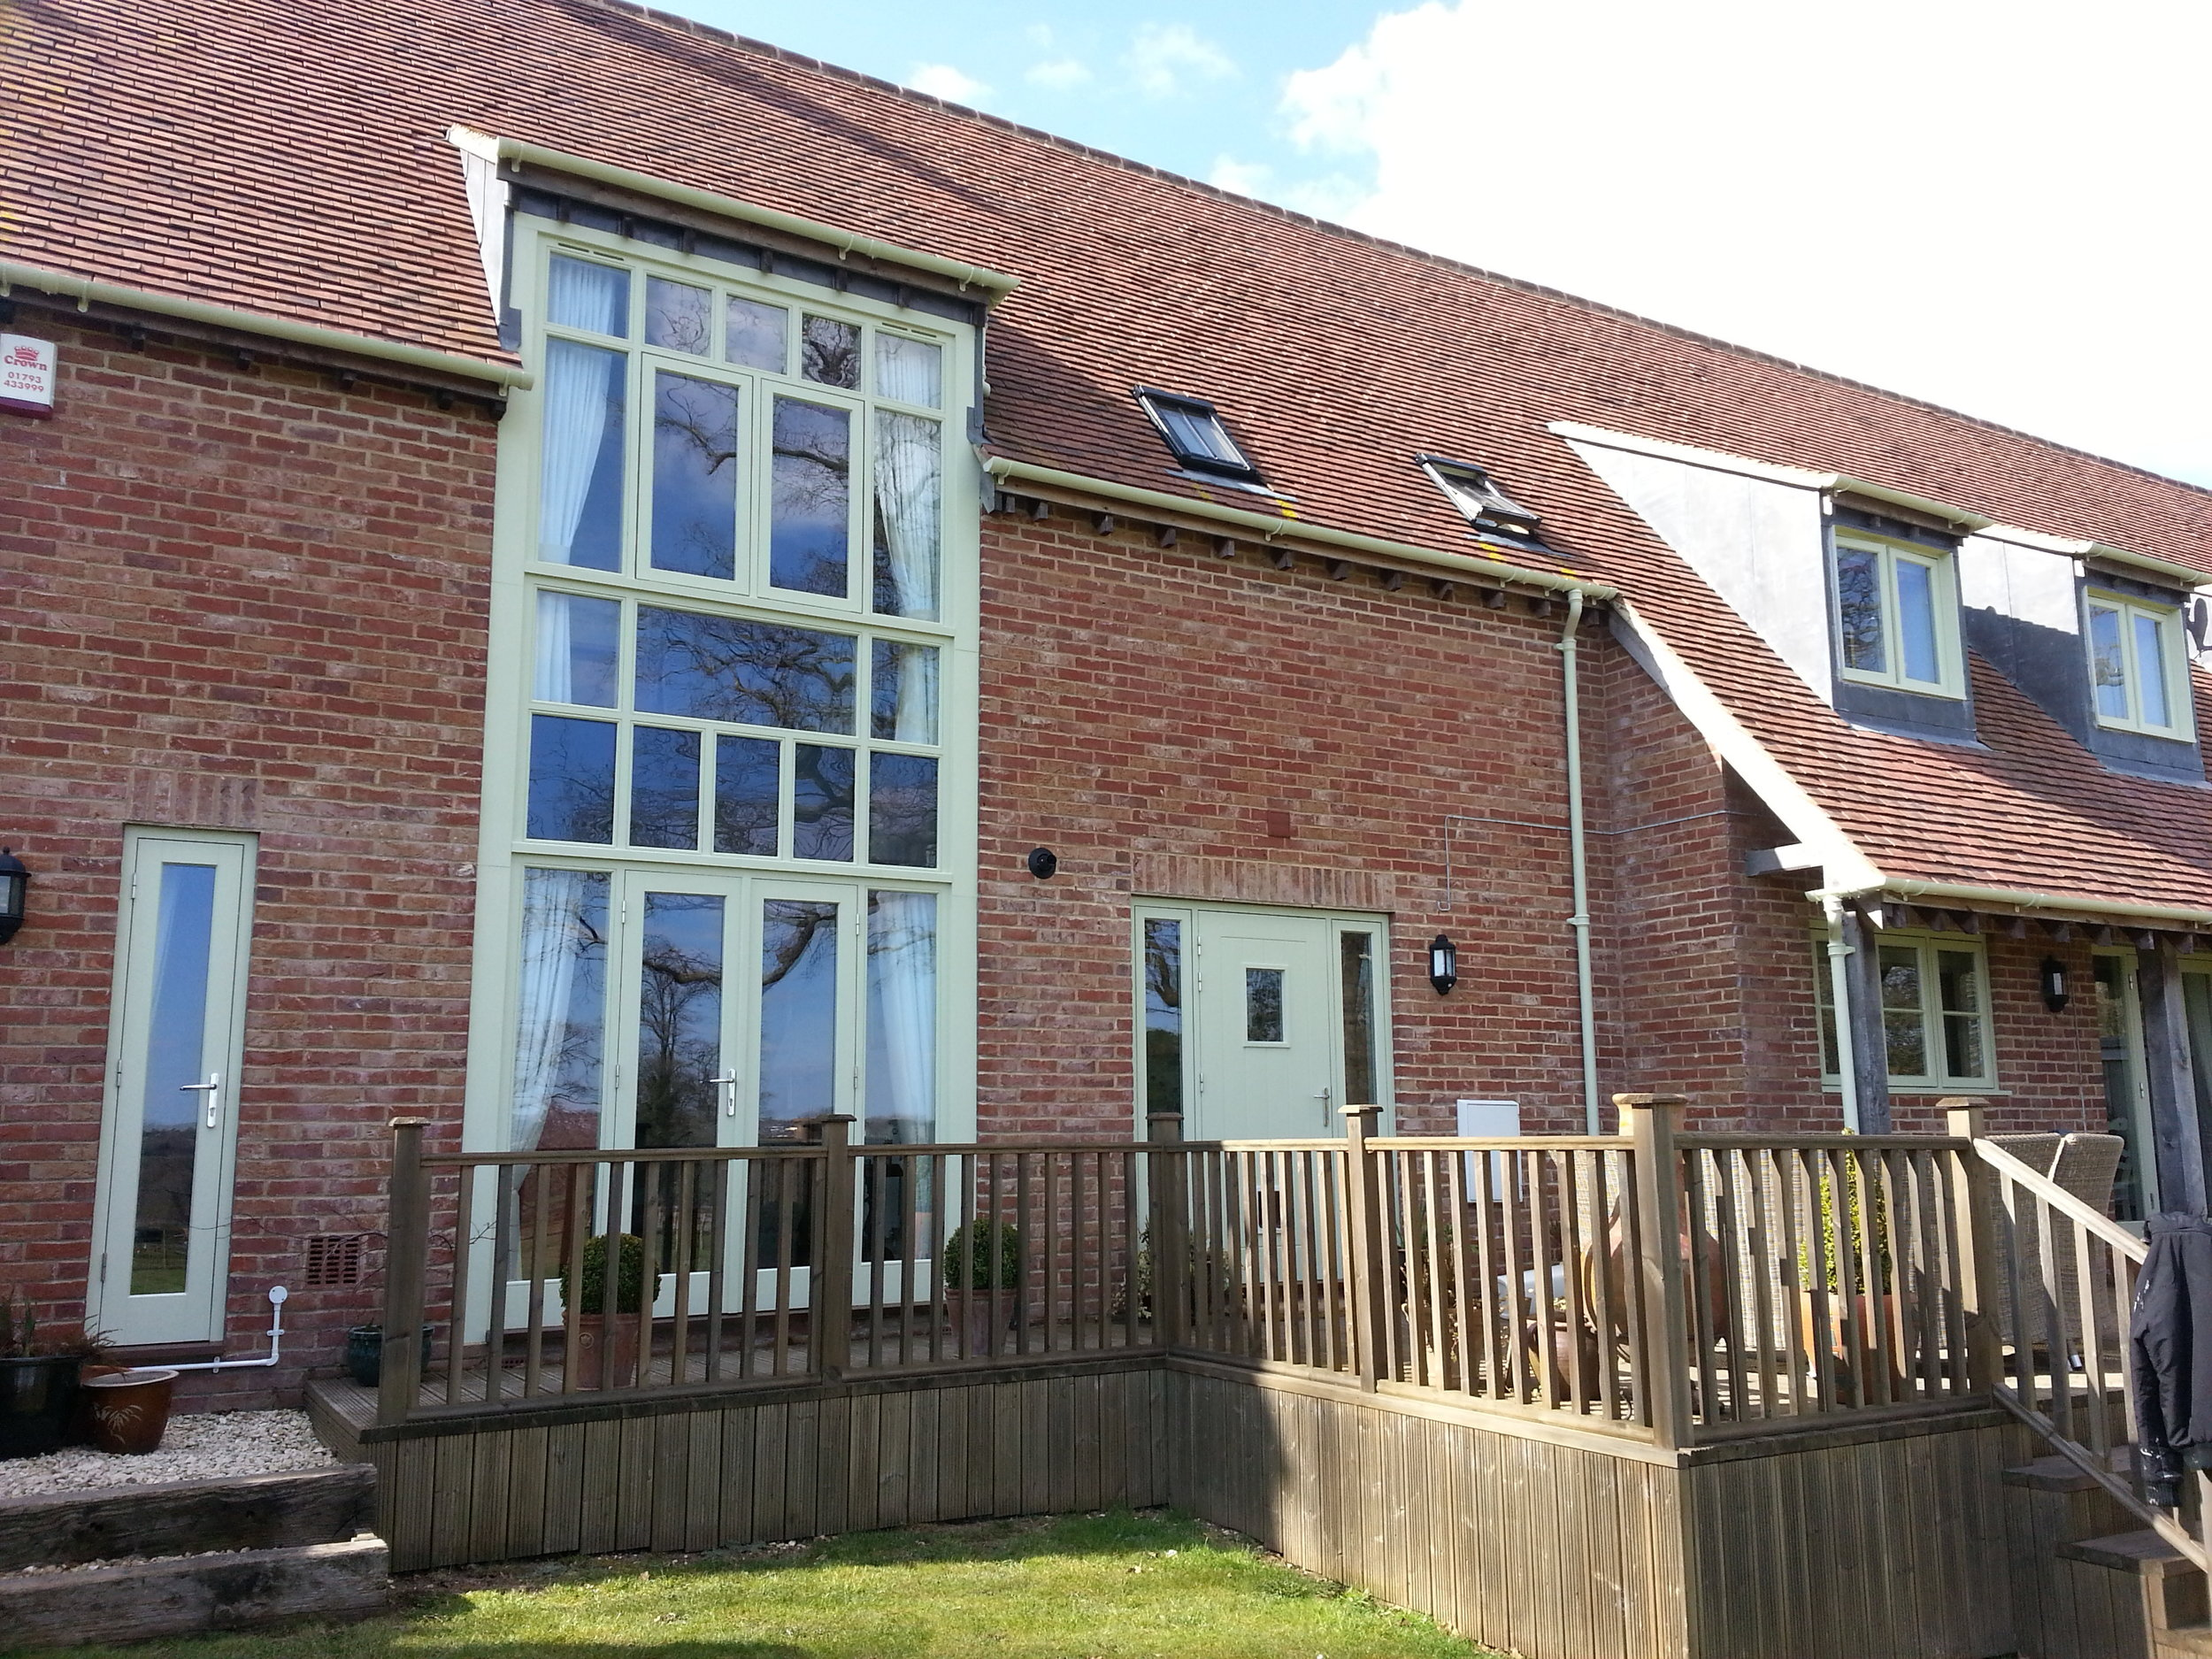 Exterior Window painting and decorating in Hannington, Wiltshire